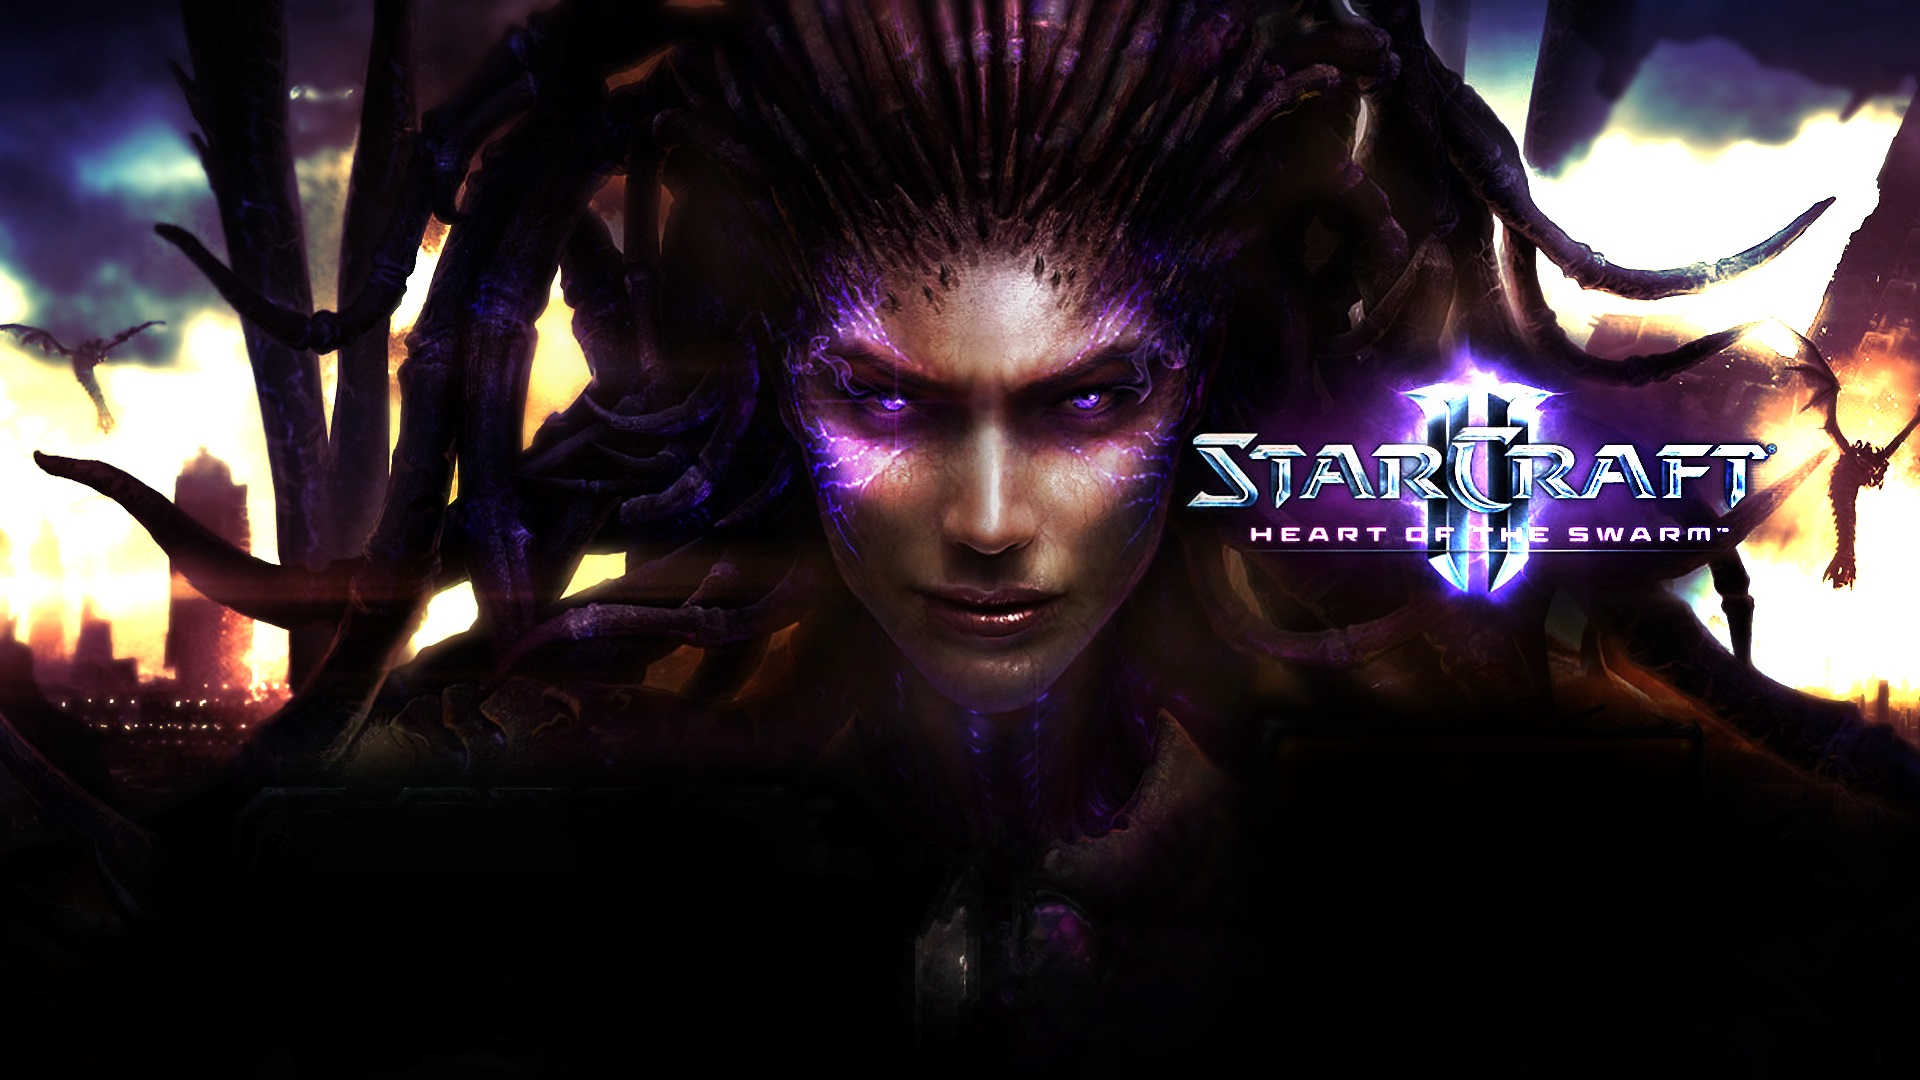 Starcraft 2 Heart of the Swarm wallpaper 14